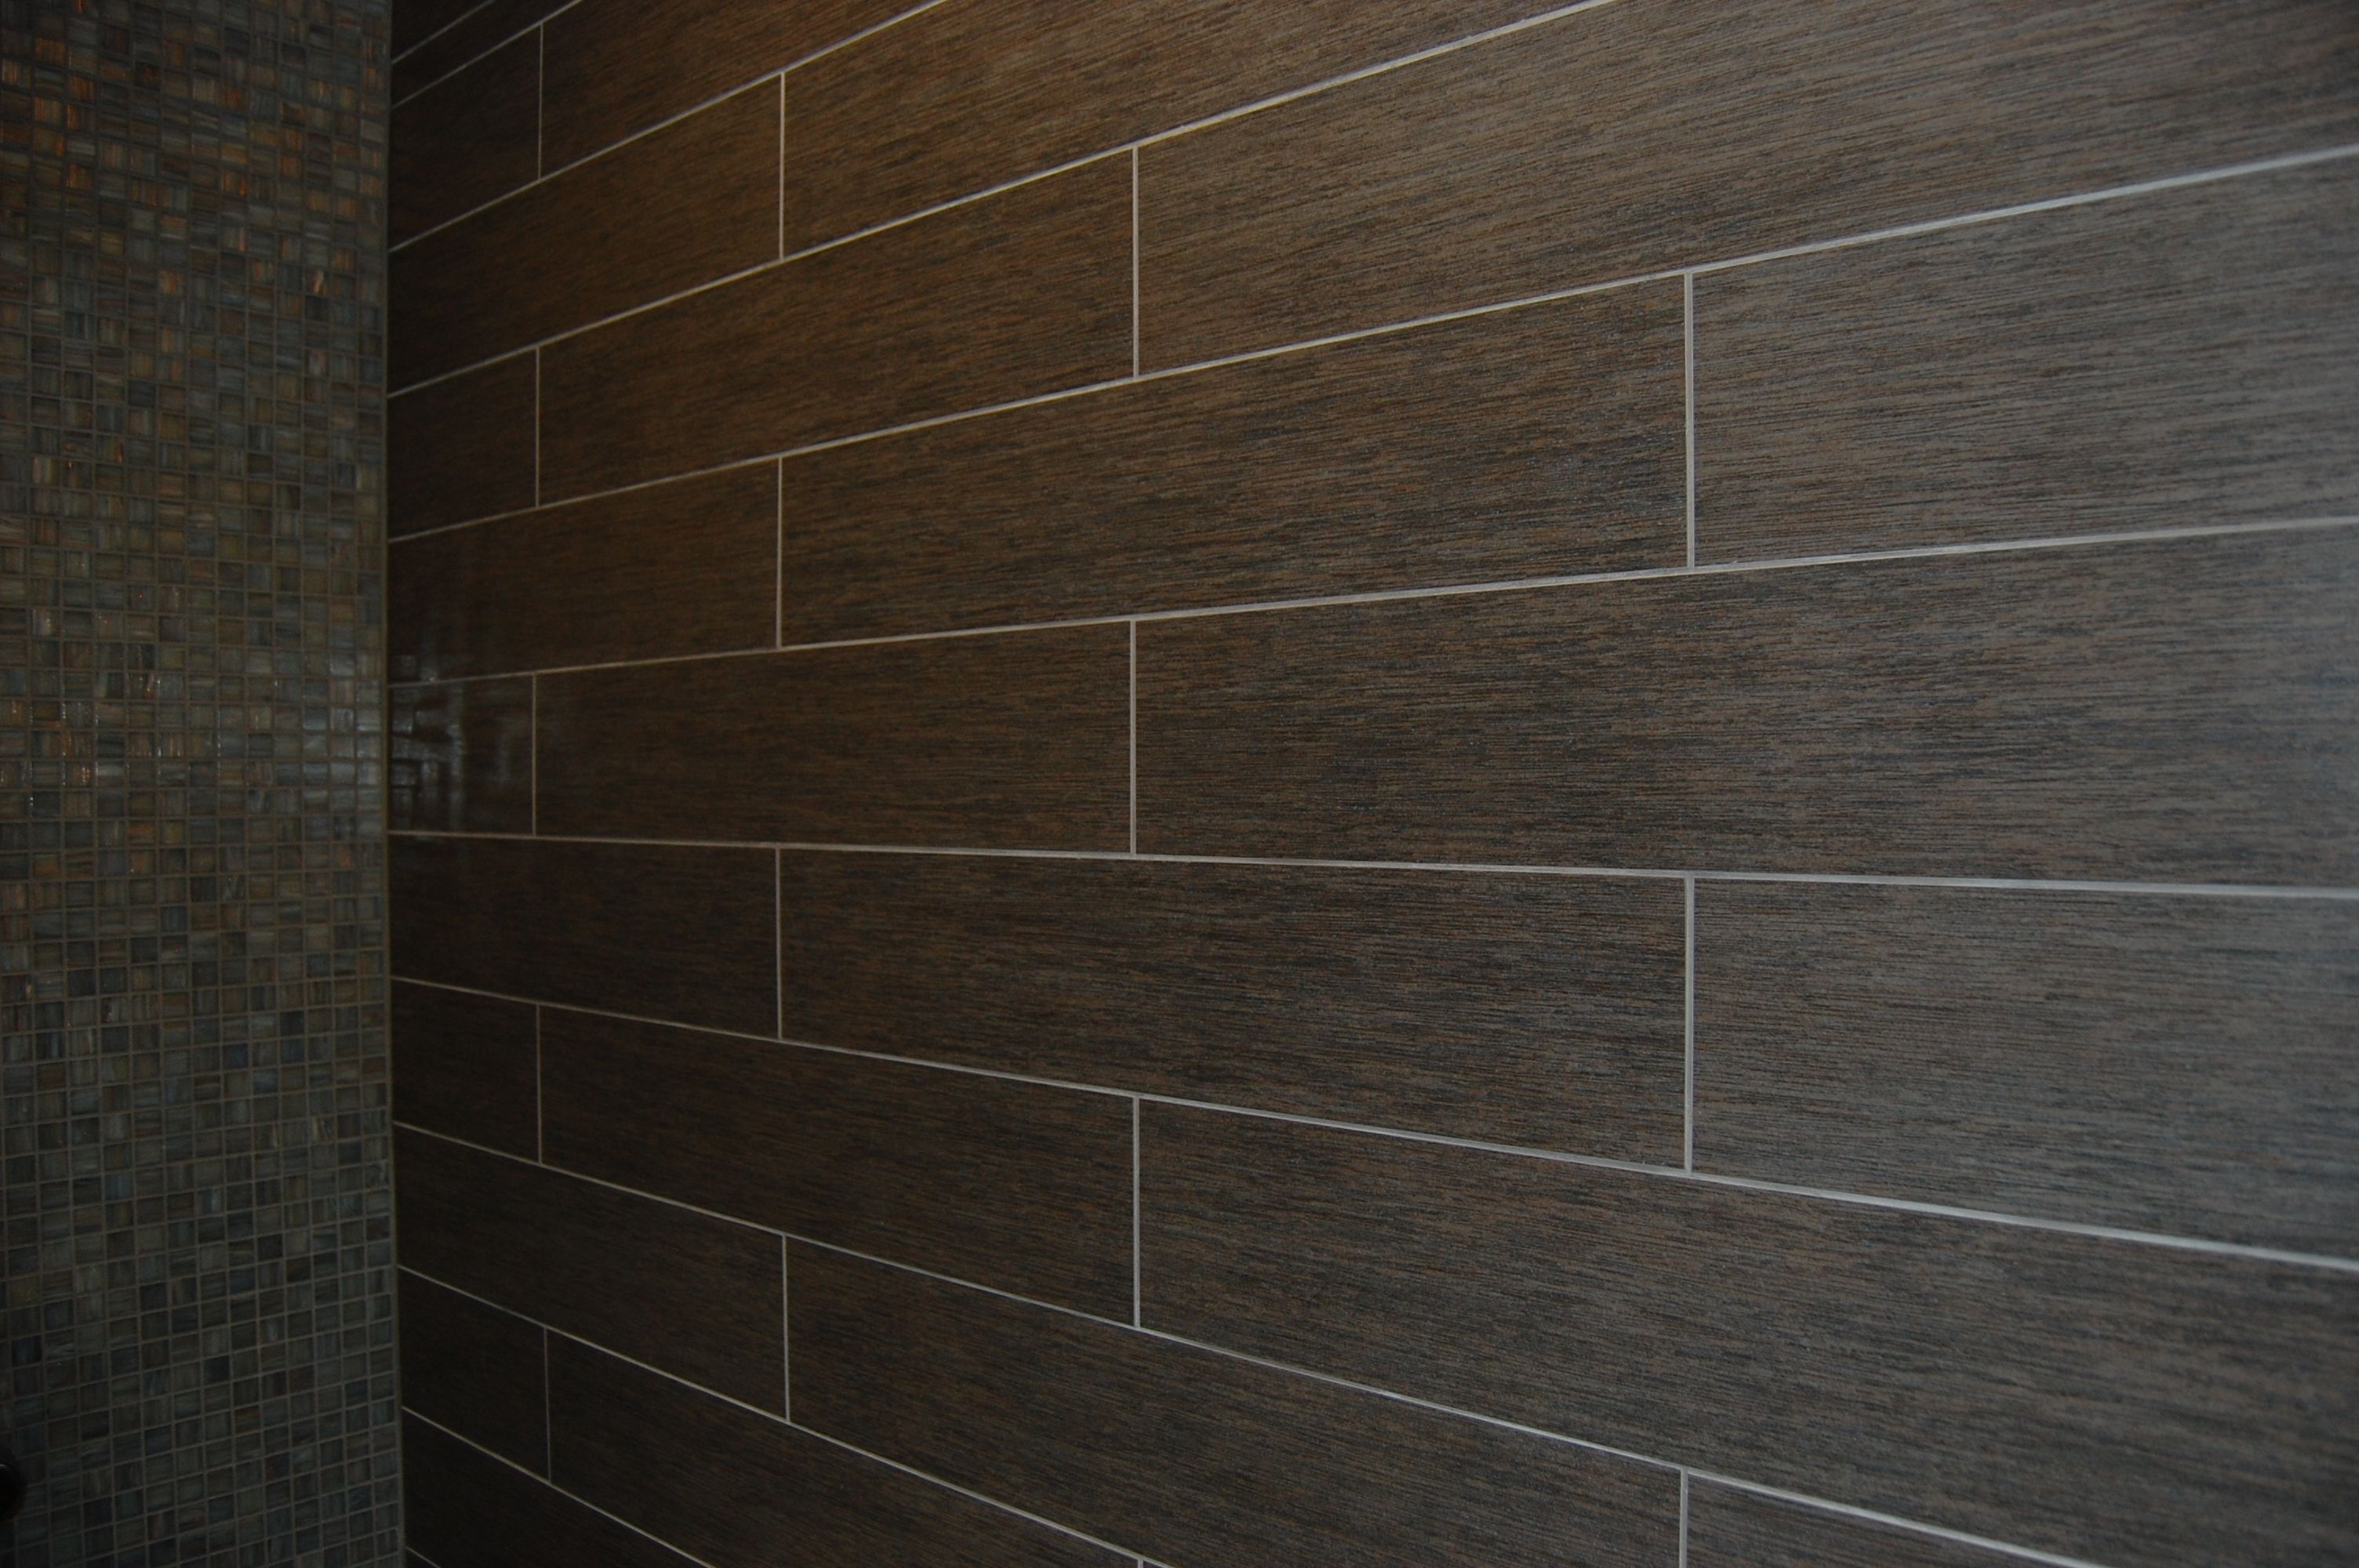 Commercial Bathroom Tile Ideas | Wall Detail   Porcelain Tile   Cricket  Communications San Diego Part 55